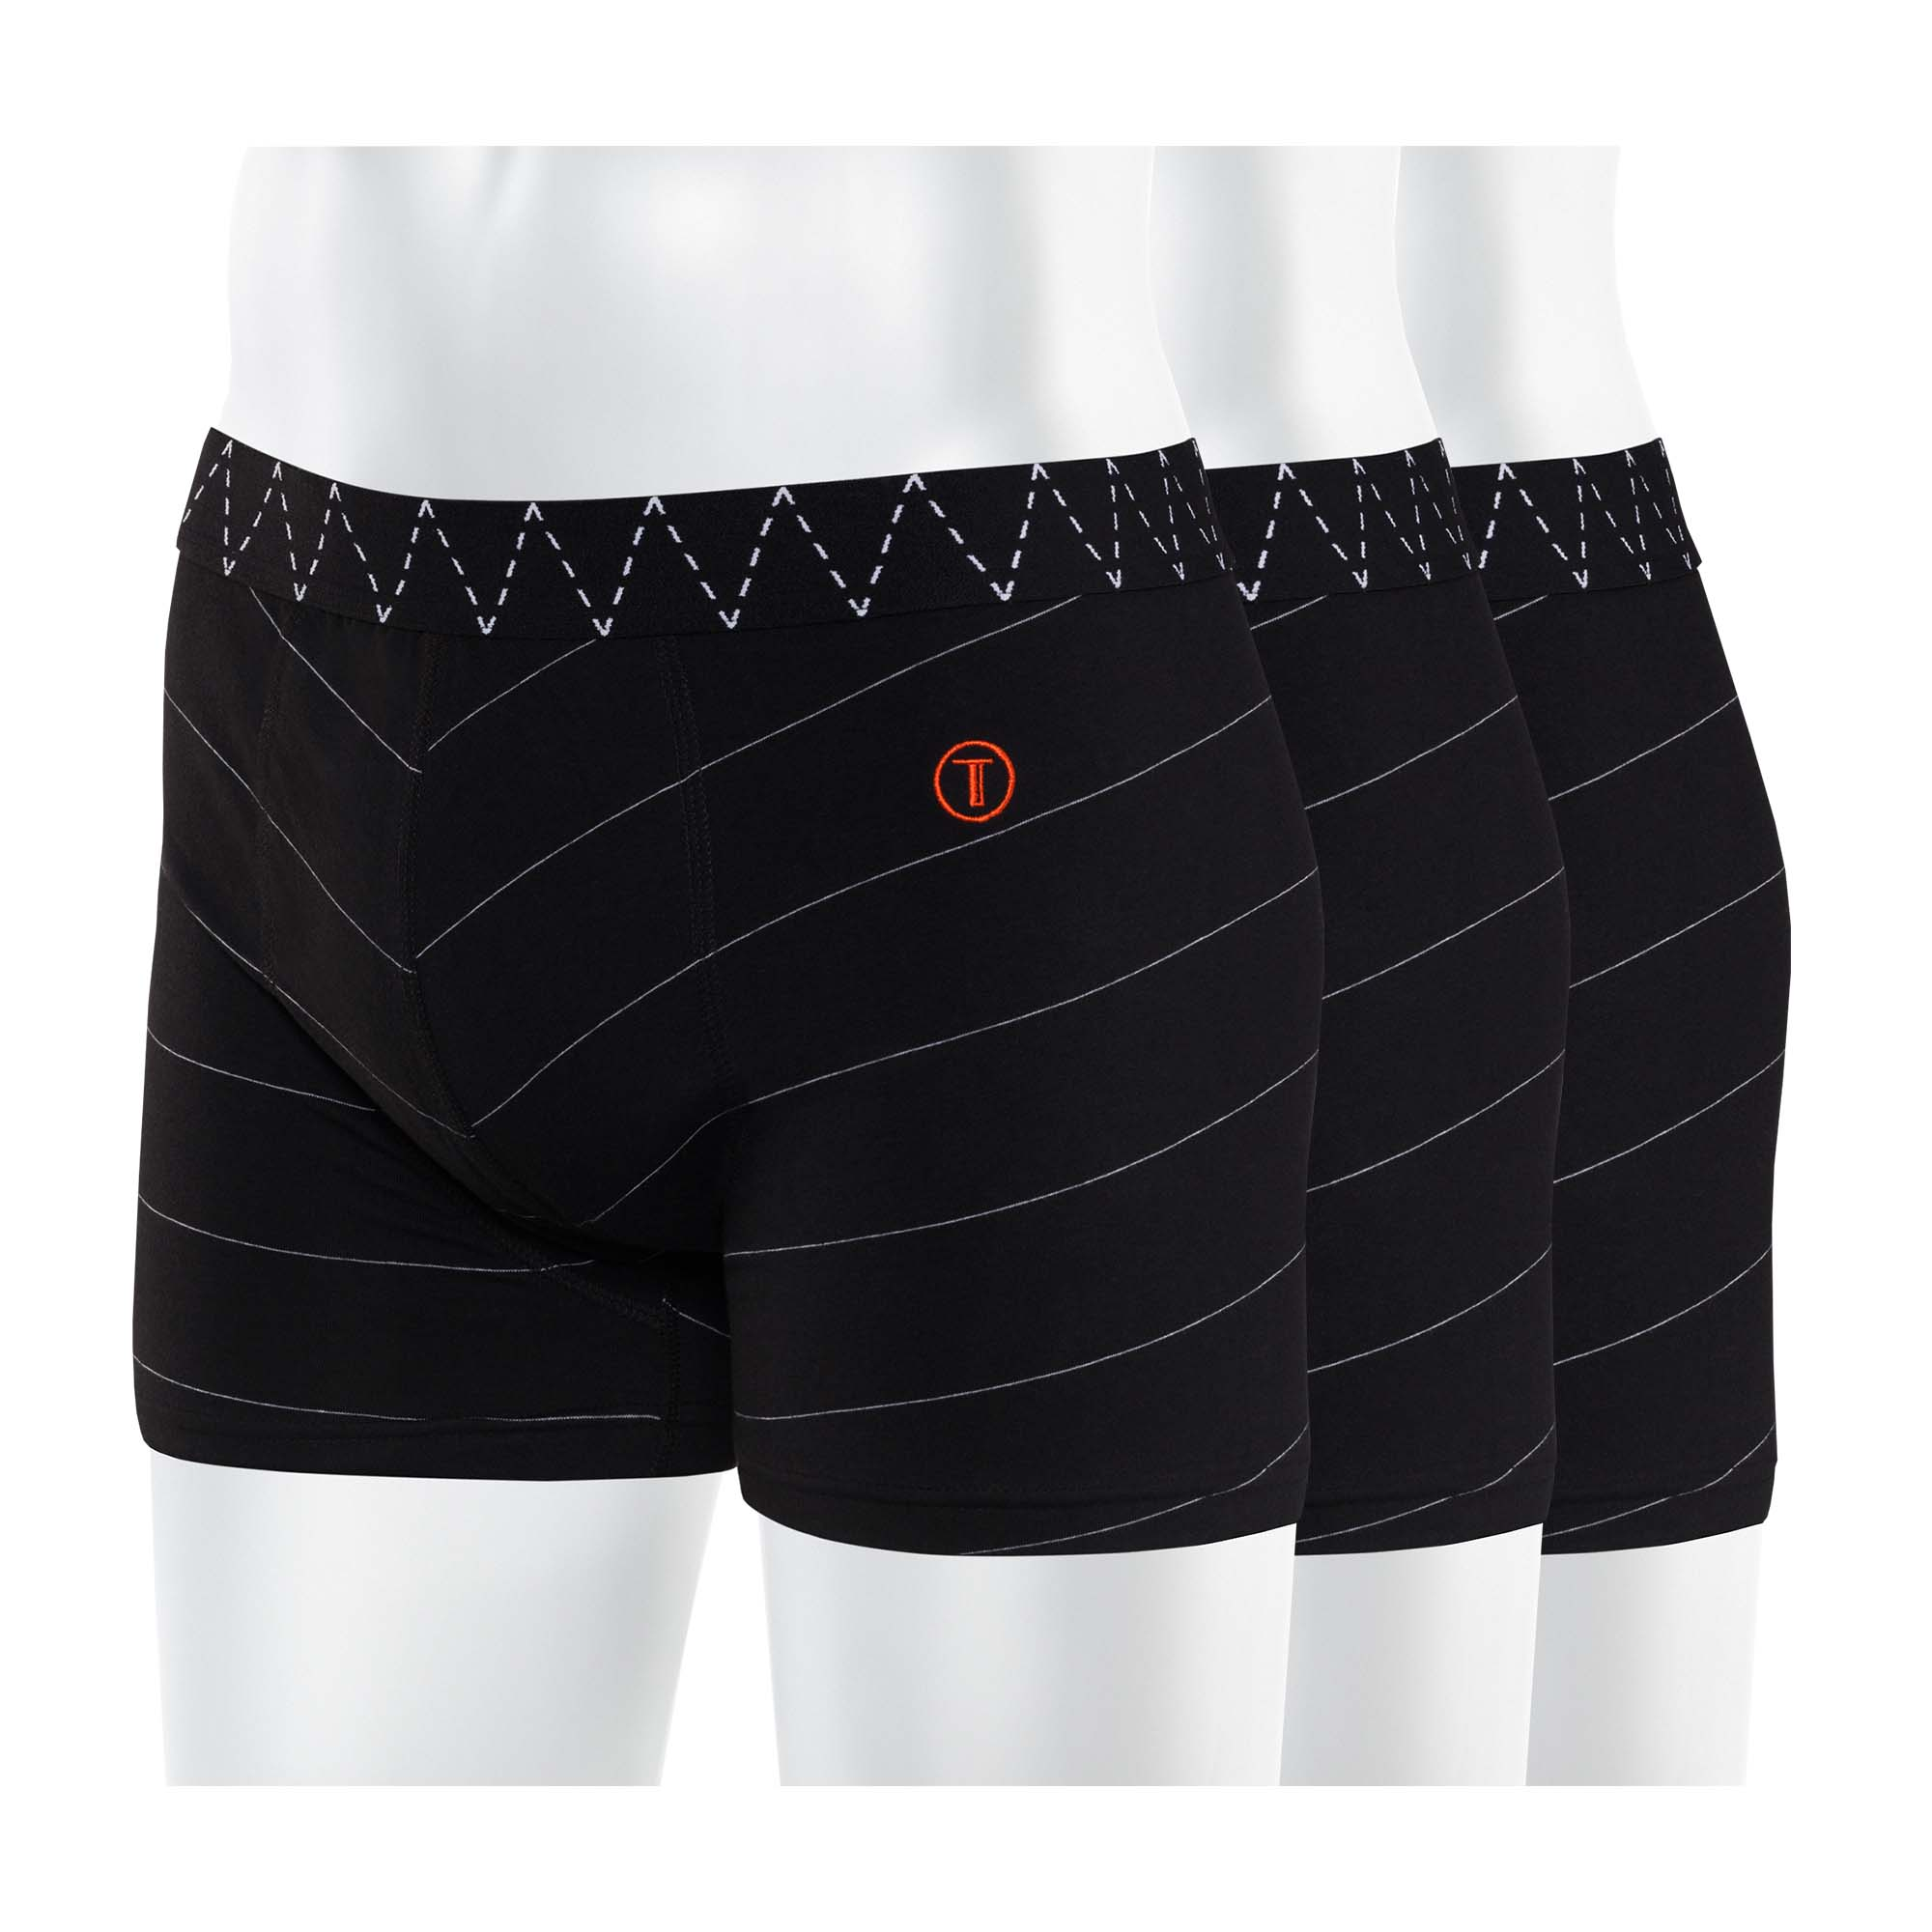 3er Pack TT15 Boxershorts Black/Microstripes GOTS & Fairtrade